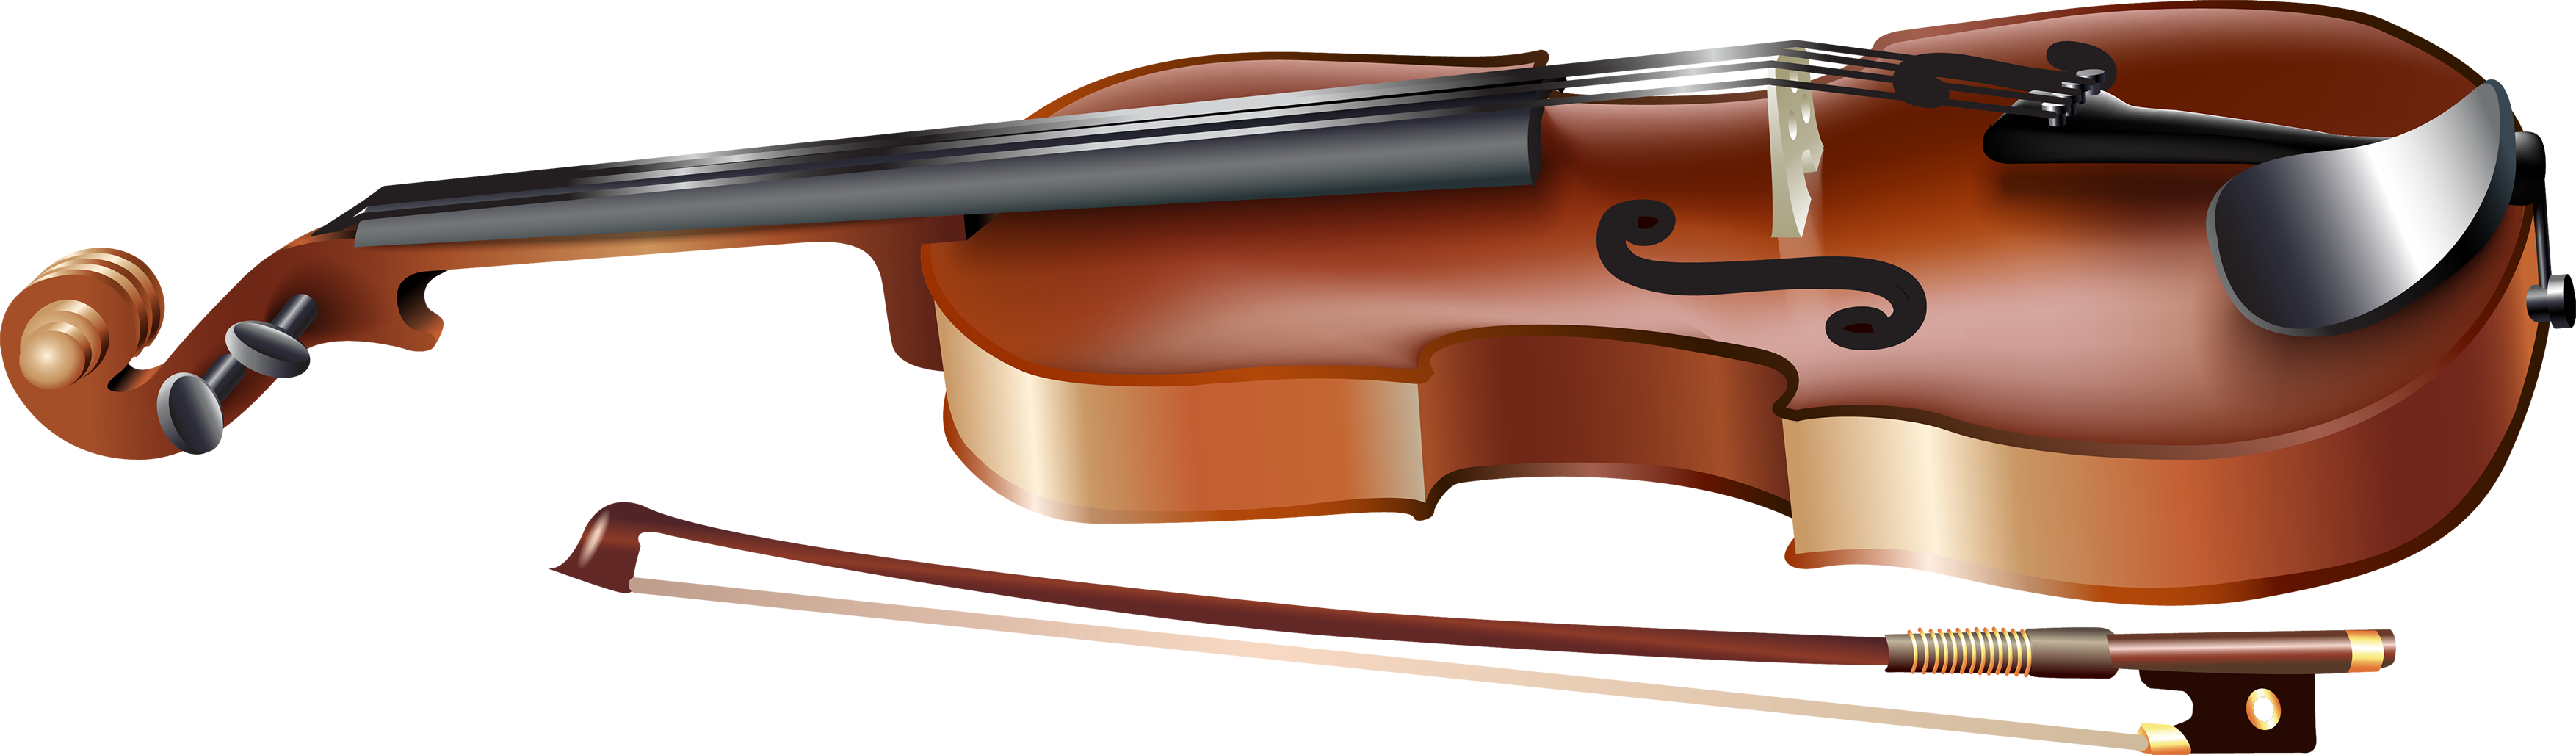 Bow png image purepng. Clipart music violin